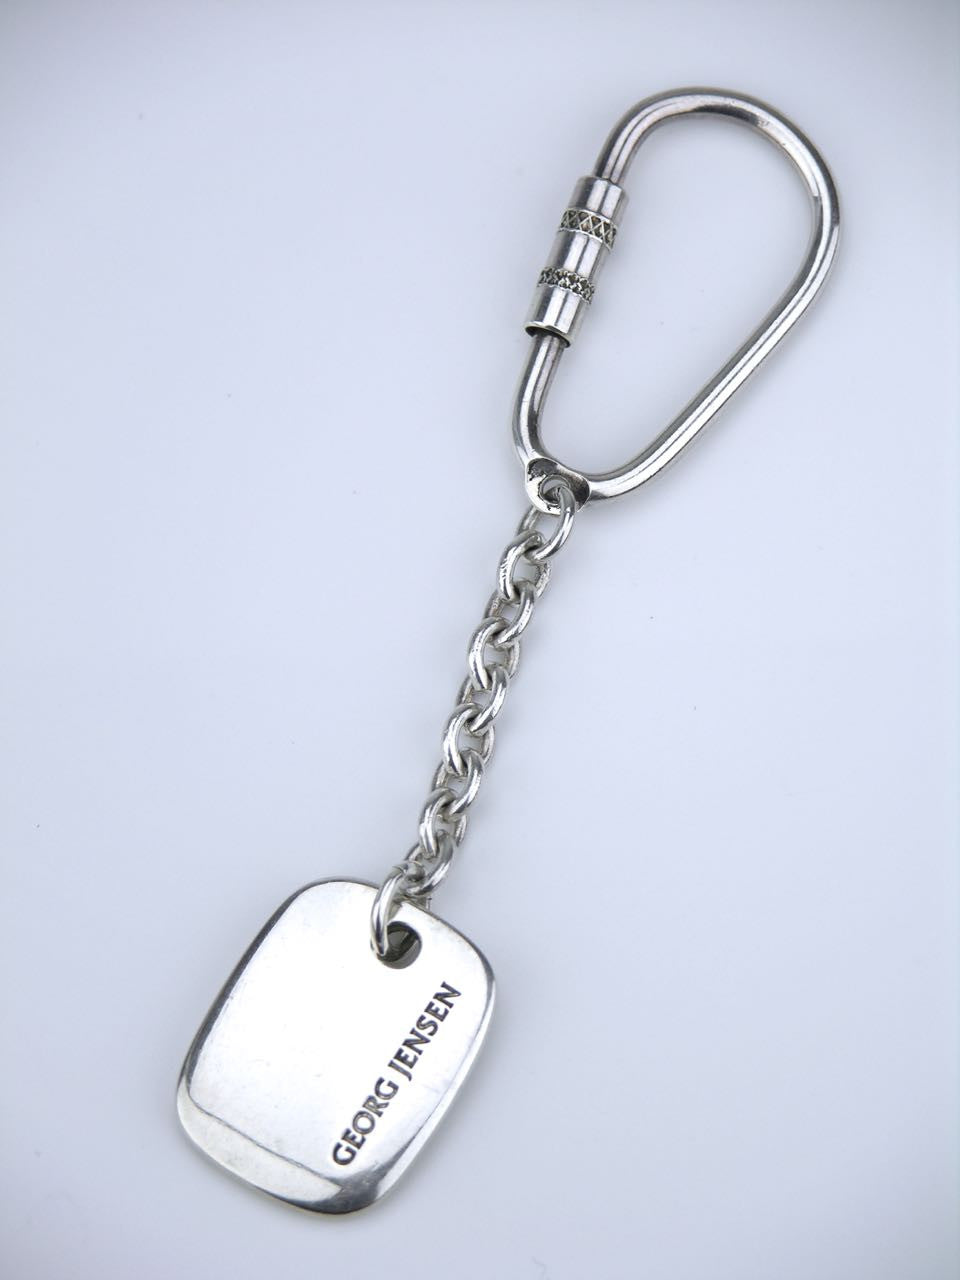 Georg Jensen silver key ring - design number 173